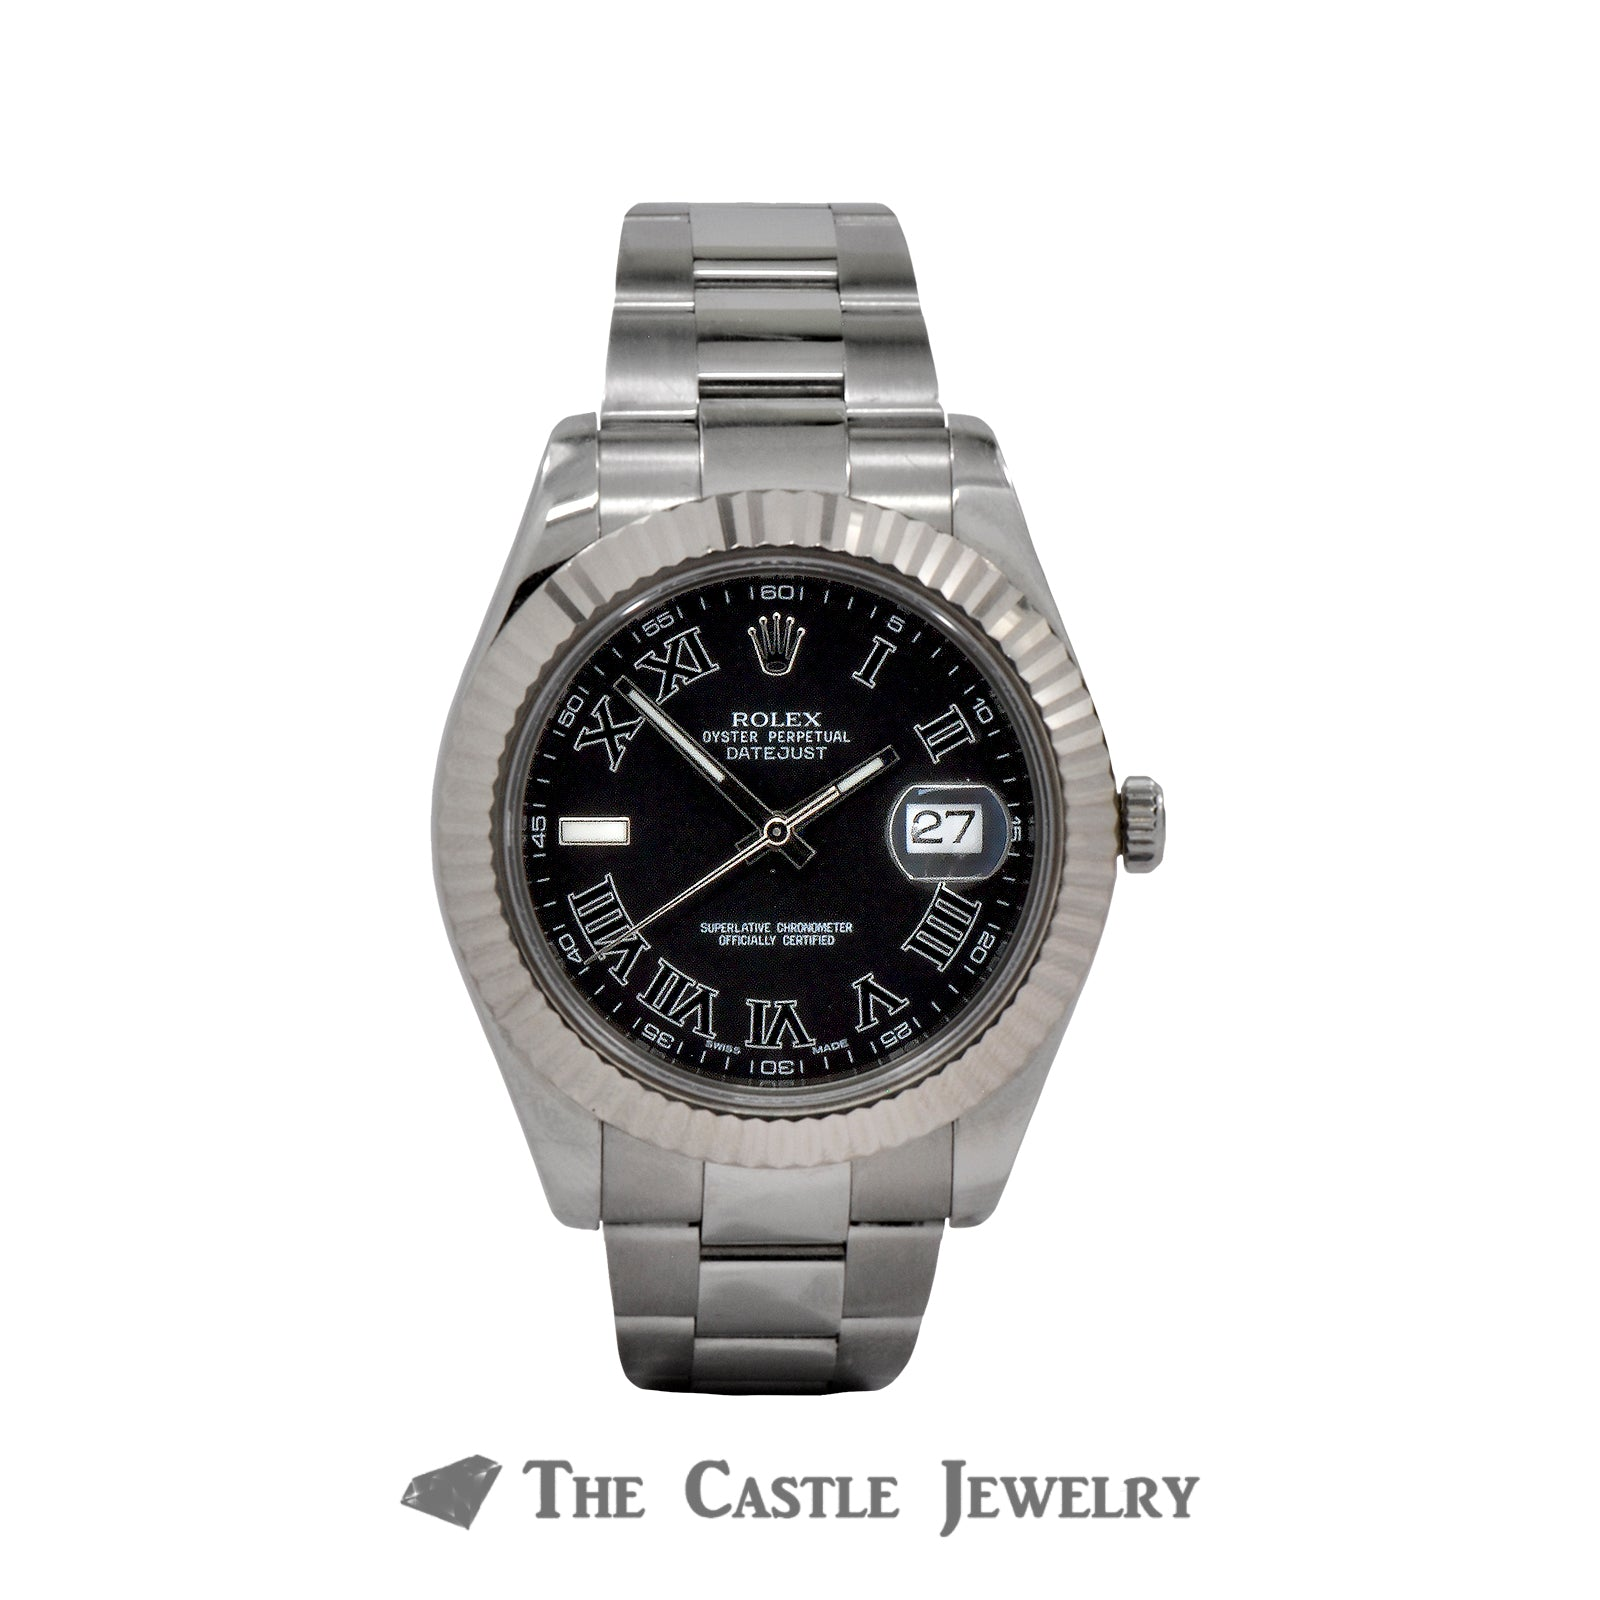 Rolex Datejust II 41mm with Roman Numeral Dial